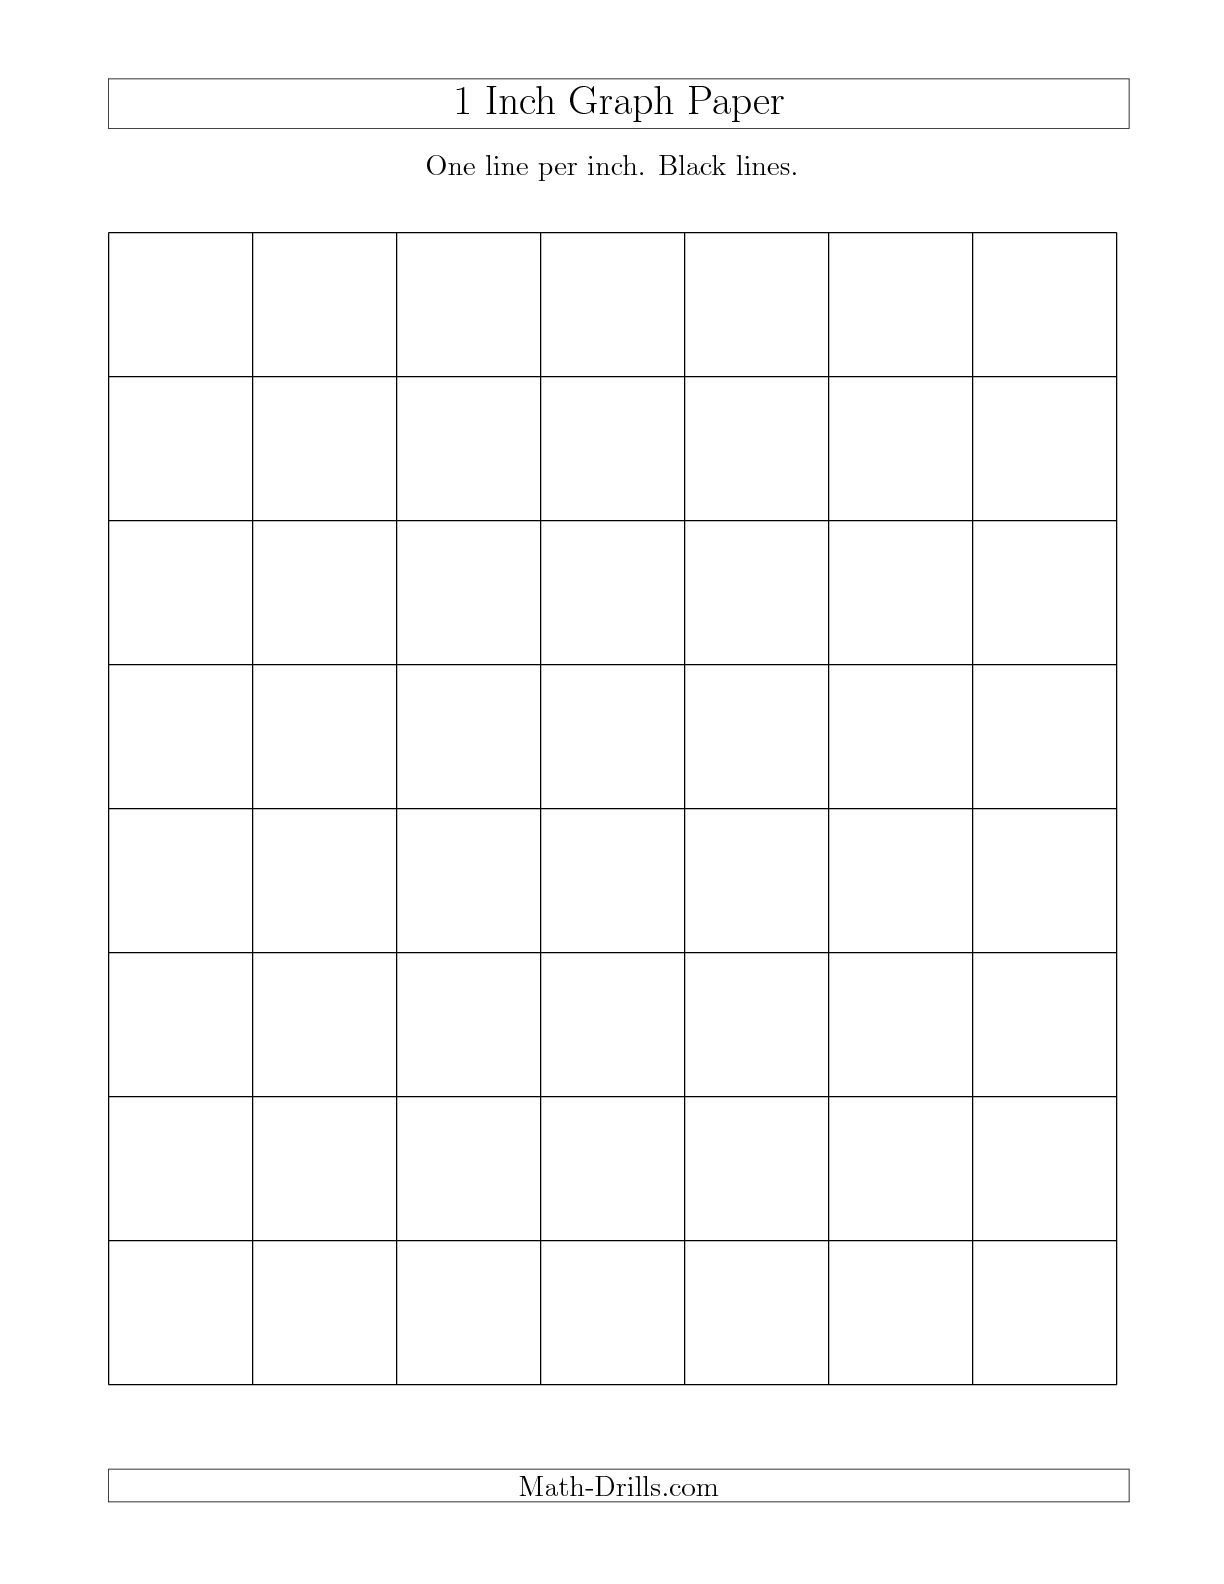 The  Inch Graph Paper With Black Lines A Graph Paper  Teaching